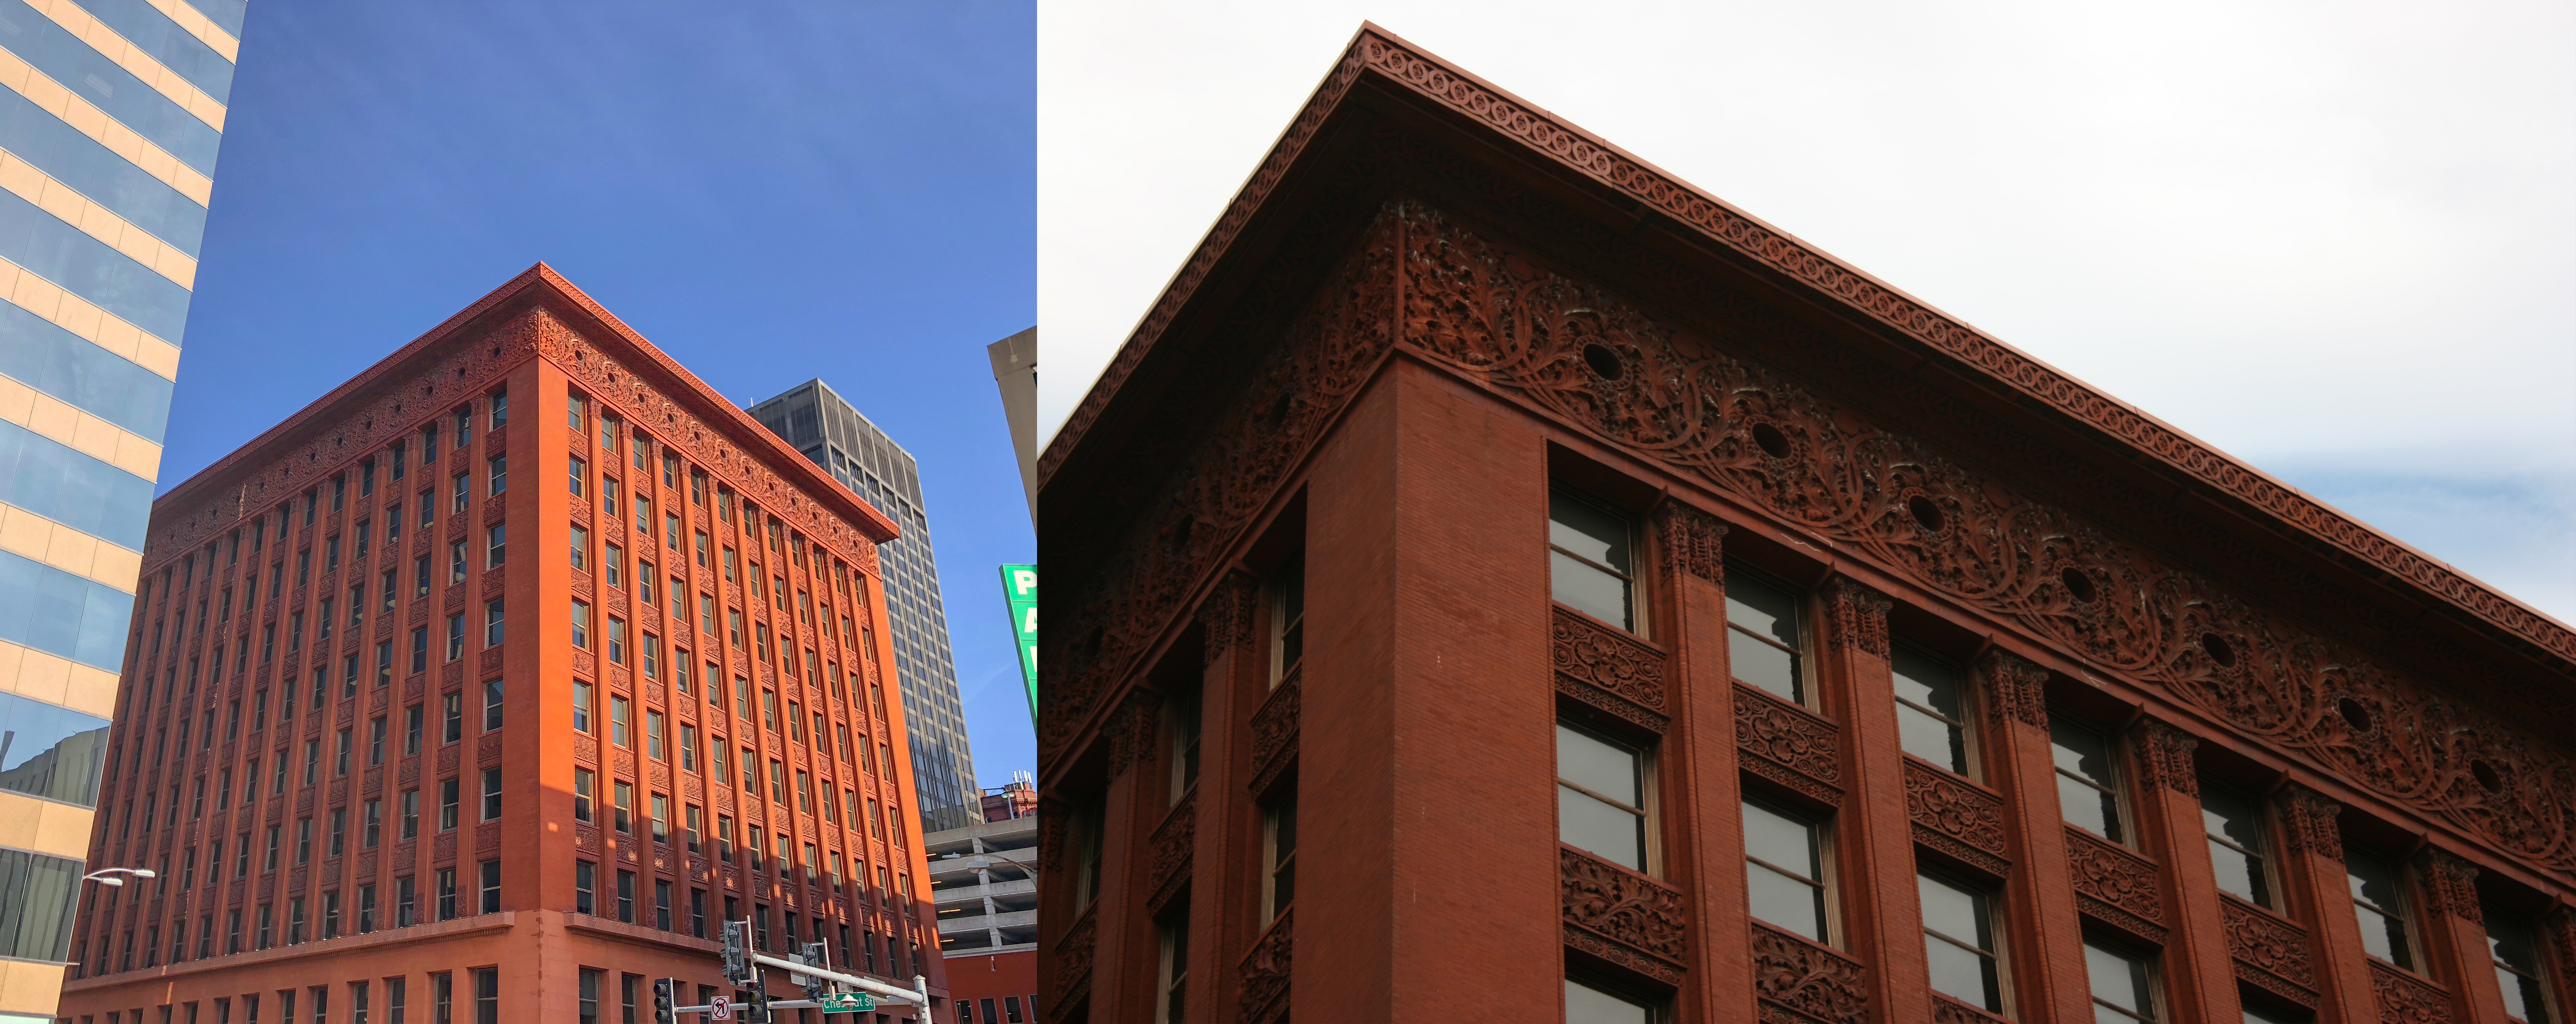 "15 Projects by ""Father of Skyscrapers"" Louis Sullivan - Wainwright Building"